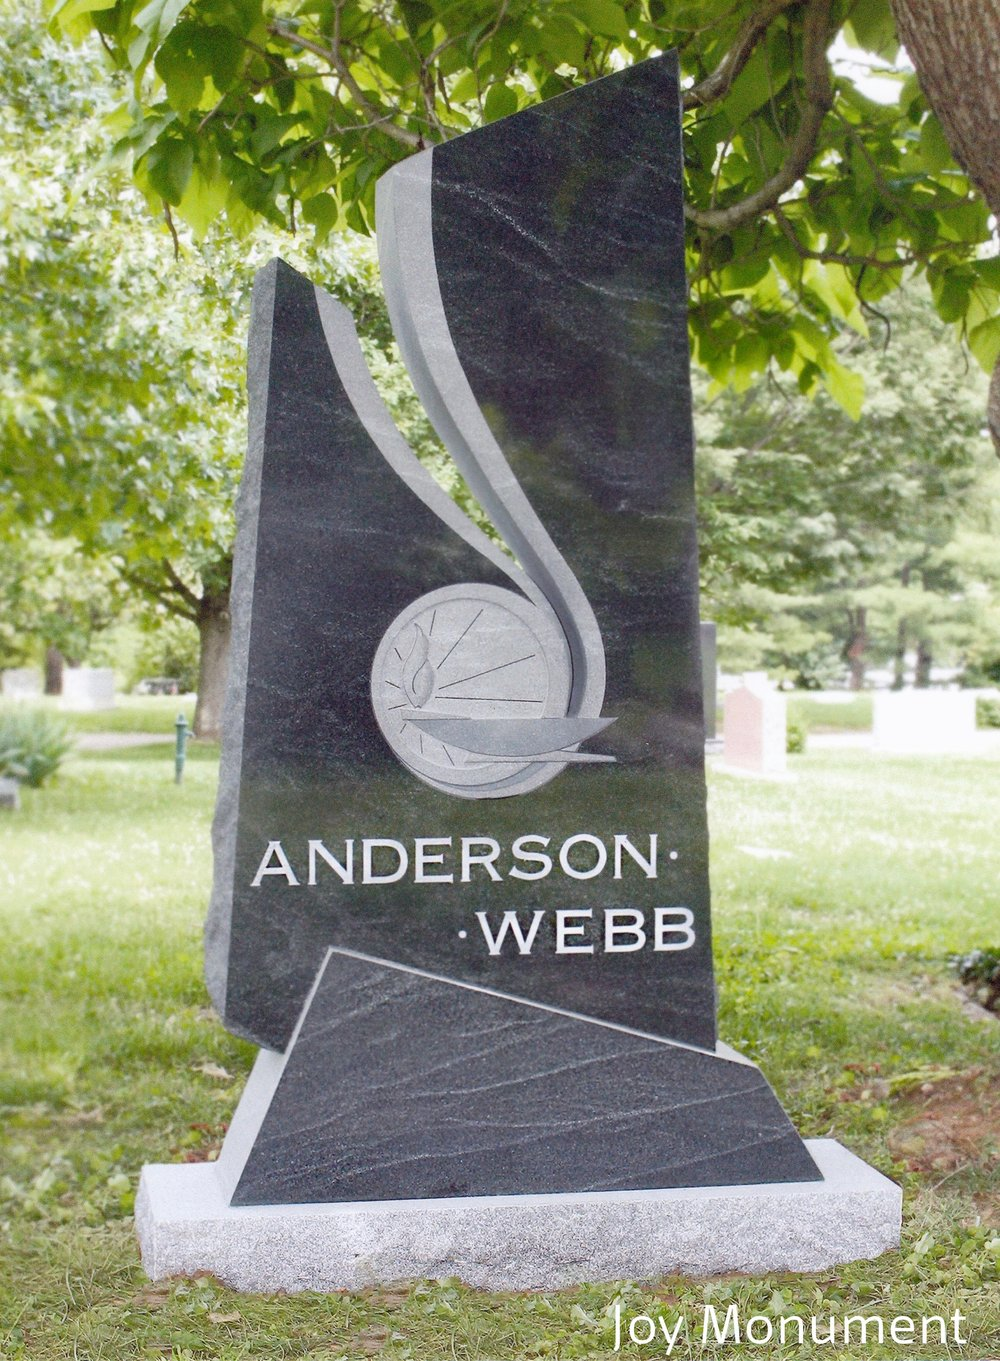 "1st Place Medium Monuments ""Anderson-Webb"", Joy Monument, Terry Joy, AICA"